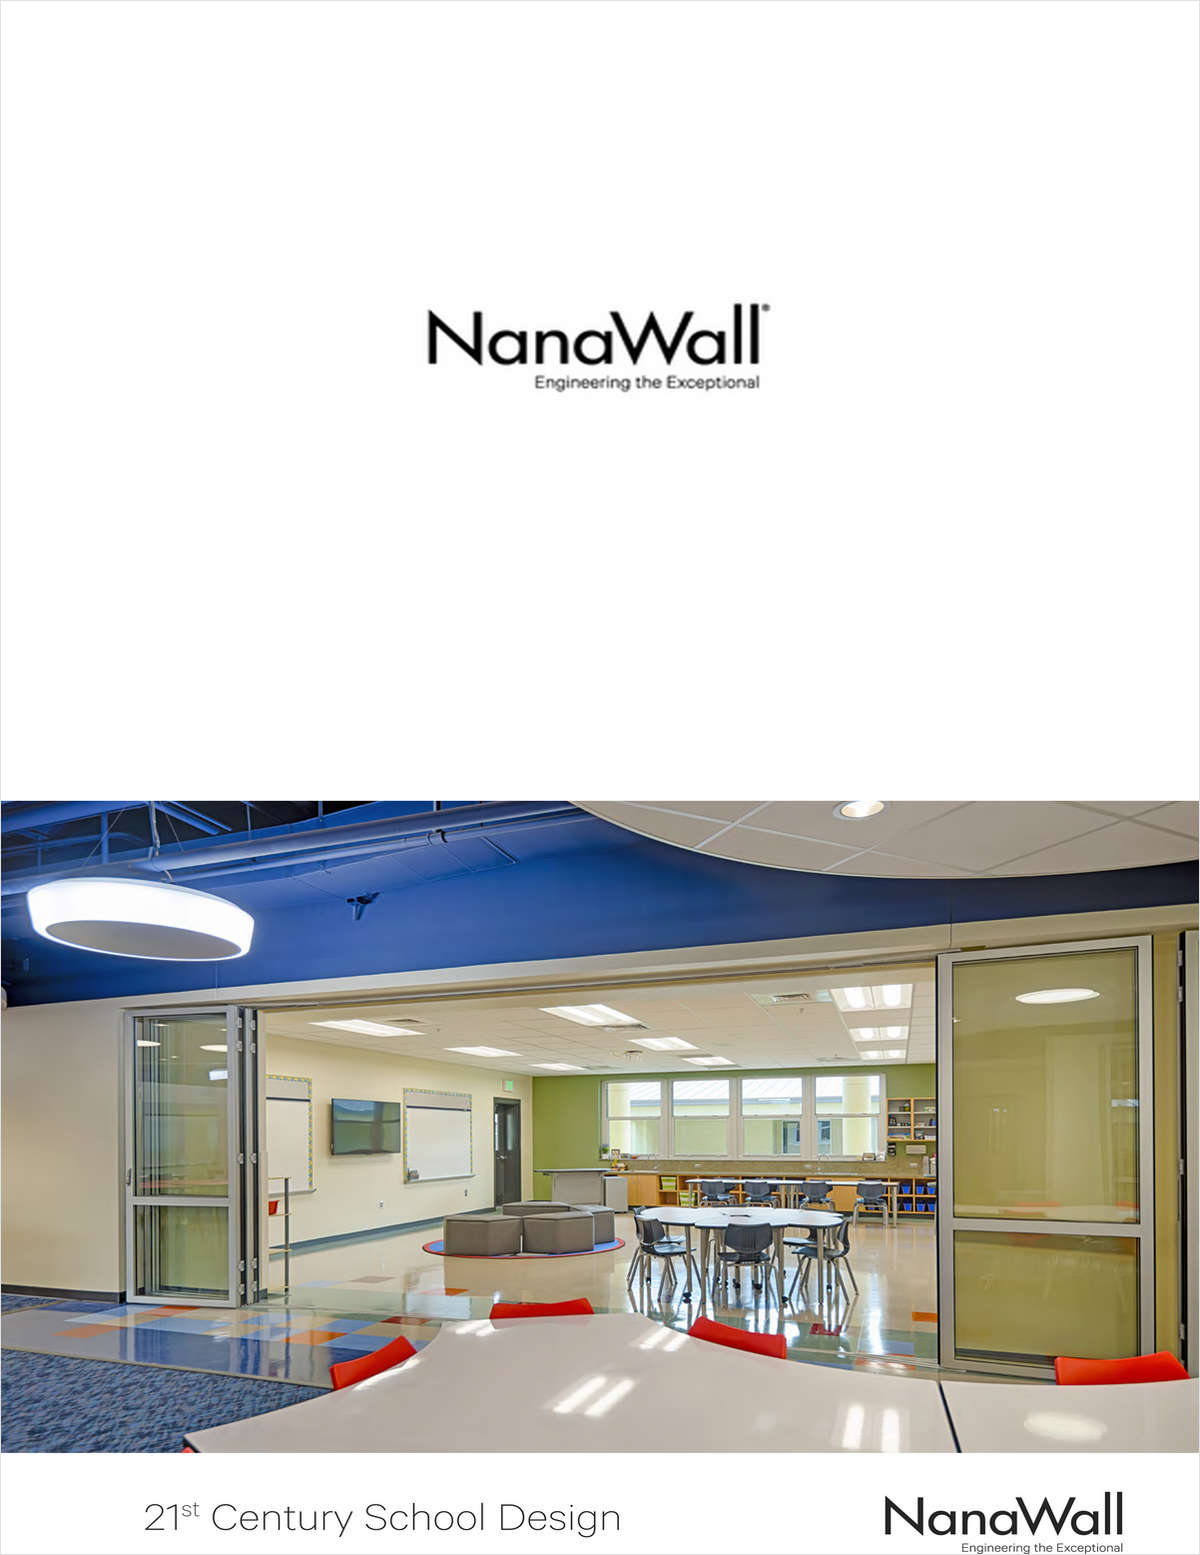 NanaWall Flexspace: Redefining Classroom Spaces